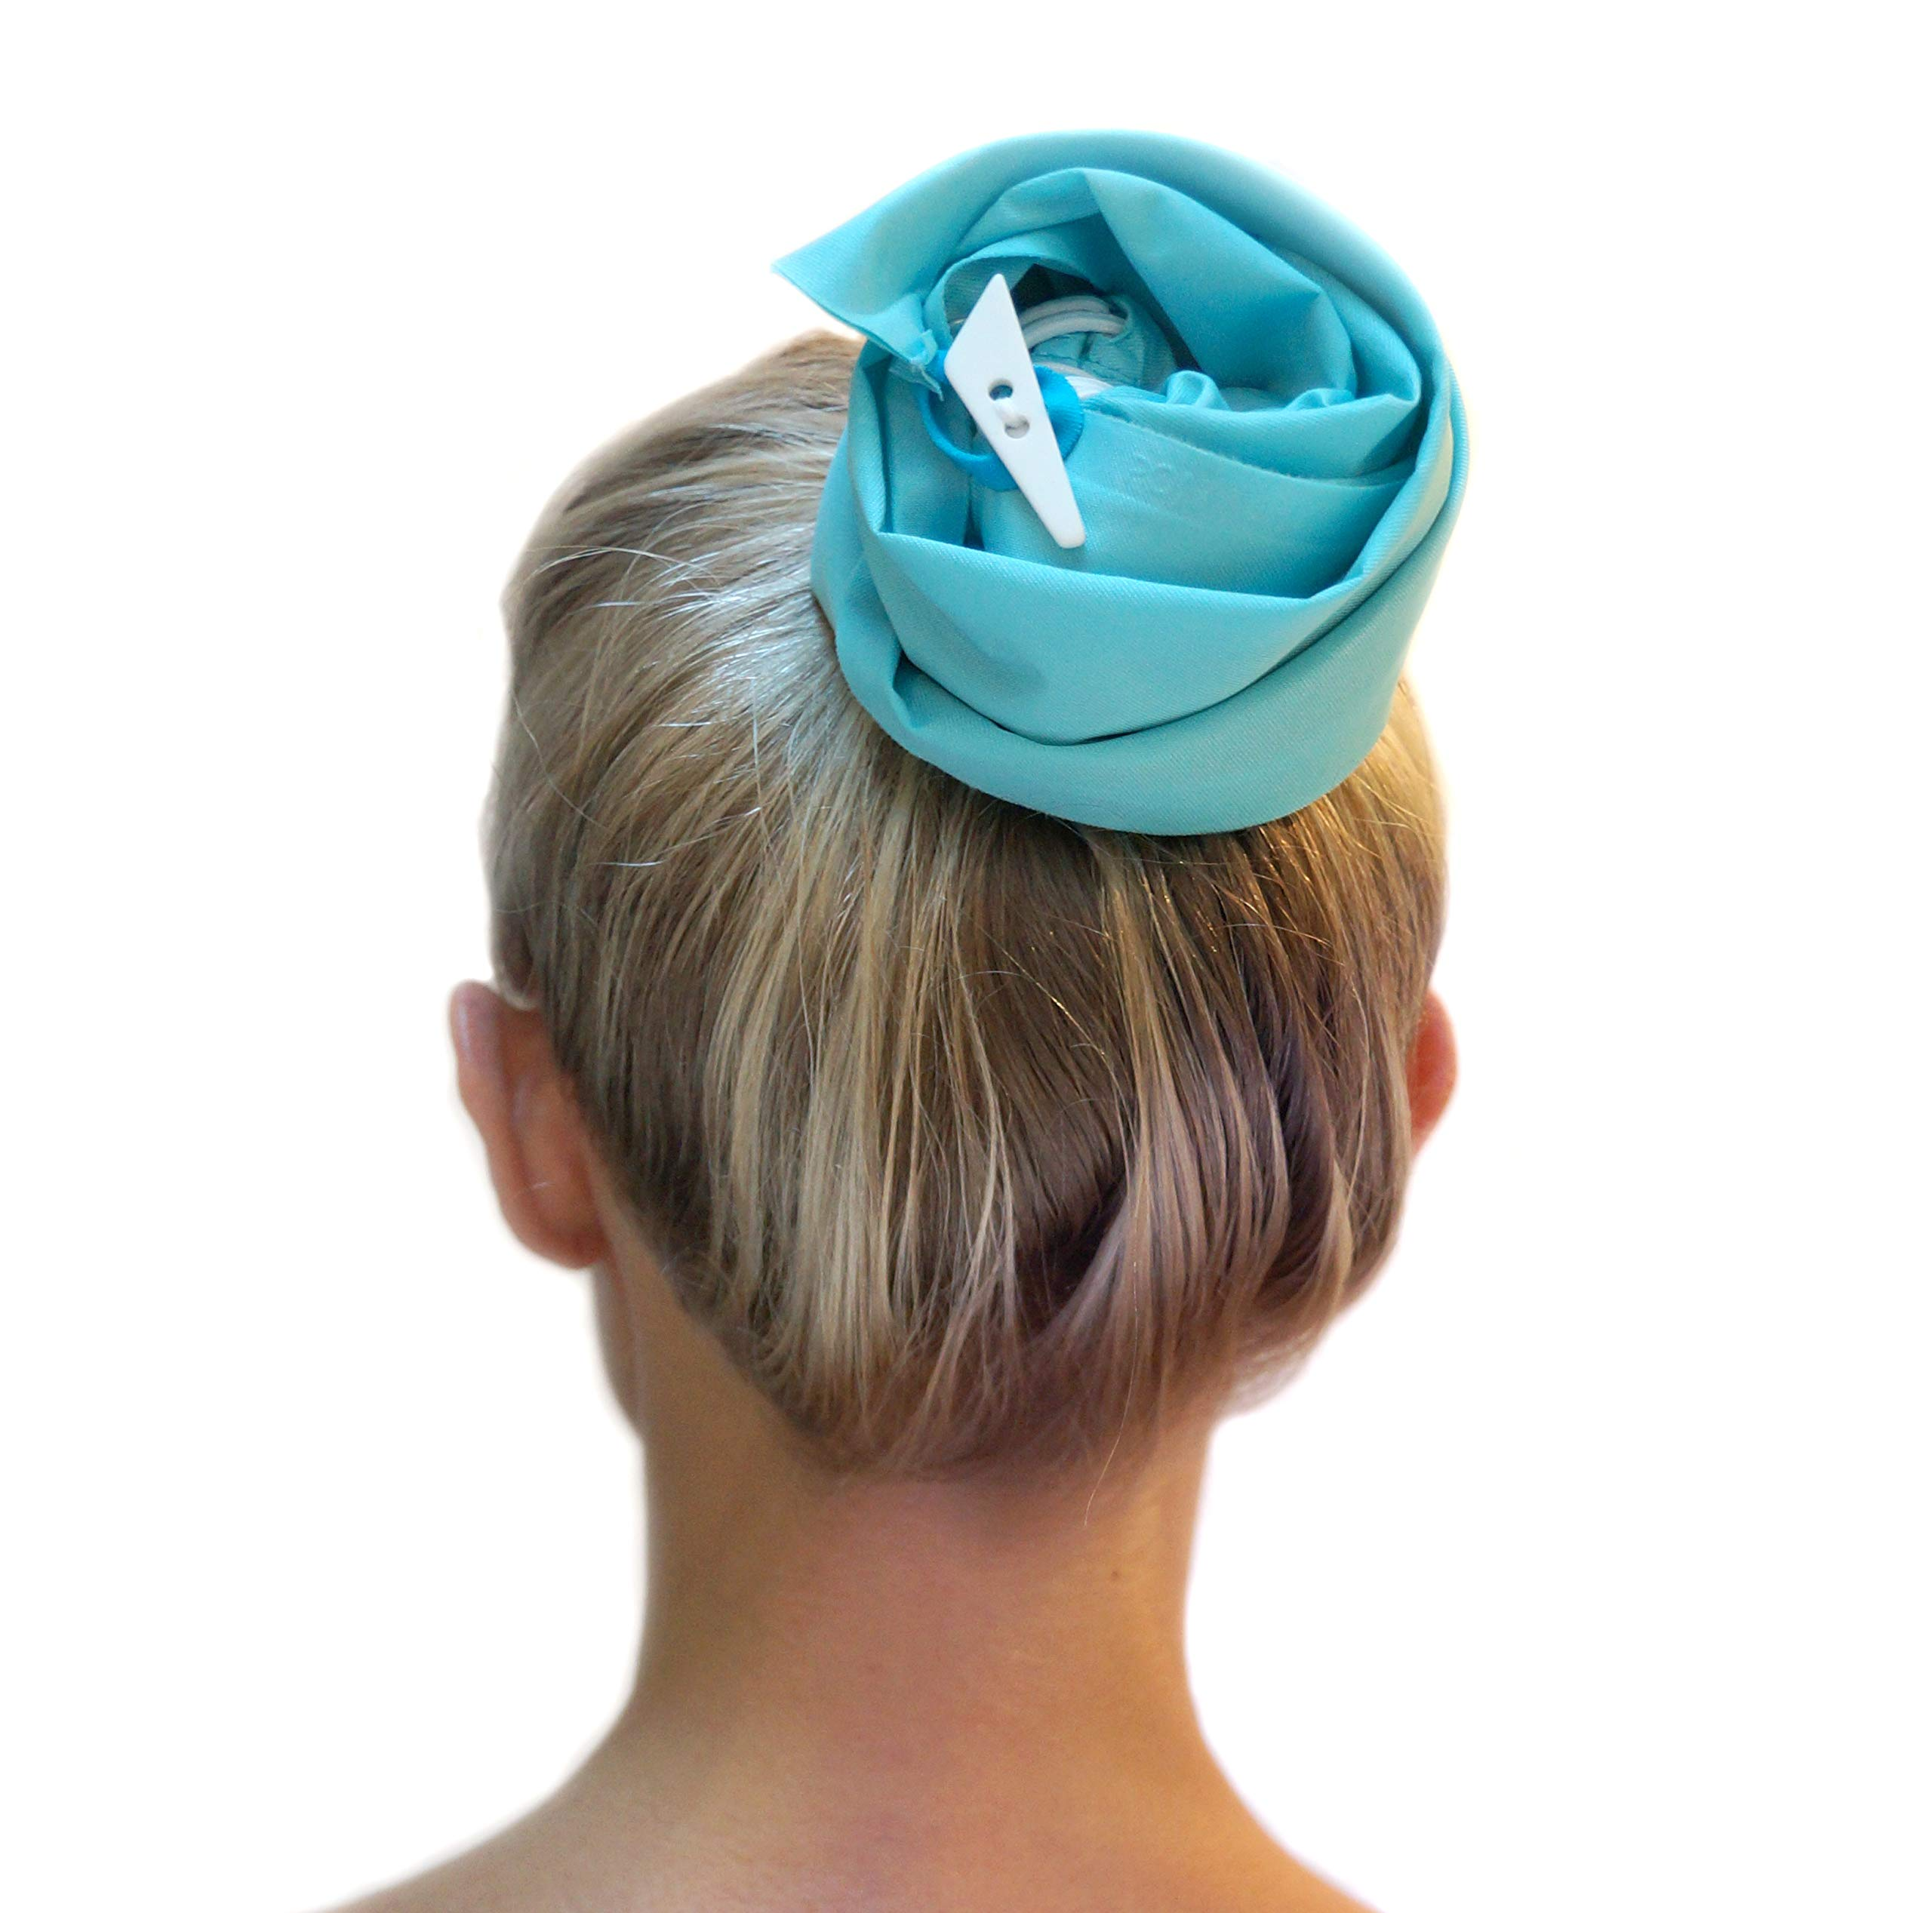 PONYDRY WATERPROOF HAIRSLEEVE IN TURQUOISE - Wash just the roots of your hair while keeping your lengths dry. Perfect for the Shower, Gym, Pool and Beach by PONYDRY